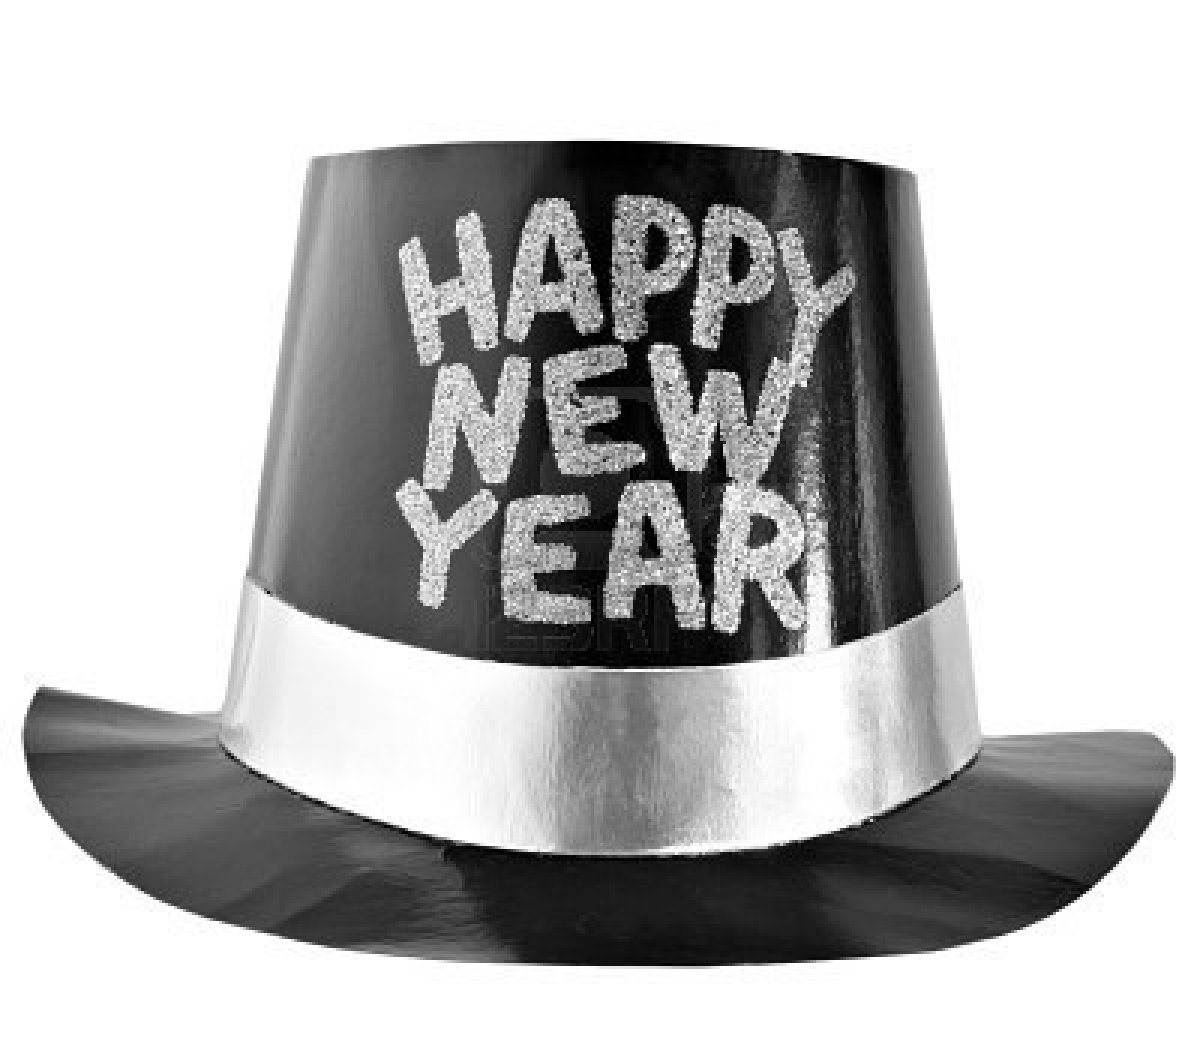 New Year's Hats, Tiaras & Wearables. Hats Headbands Tiaras Crowns Jewelry & Beads Glasses & Eyeware Show Filters Done Hide Filters. of 8. View All. Category. New Year's Glasses Trending. New (12) Product Type. Black & Gold New Year's Eve Party Hat 5in x 9in Cardstock & Foil Hat.